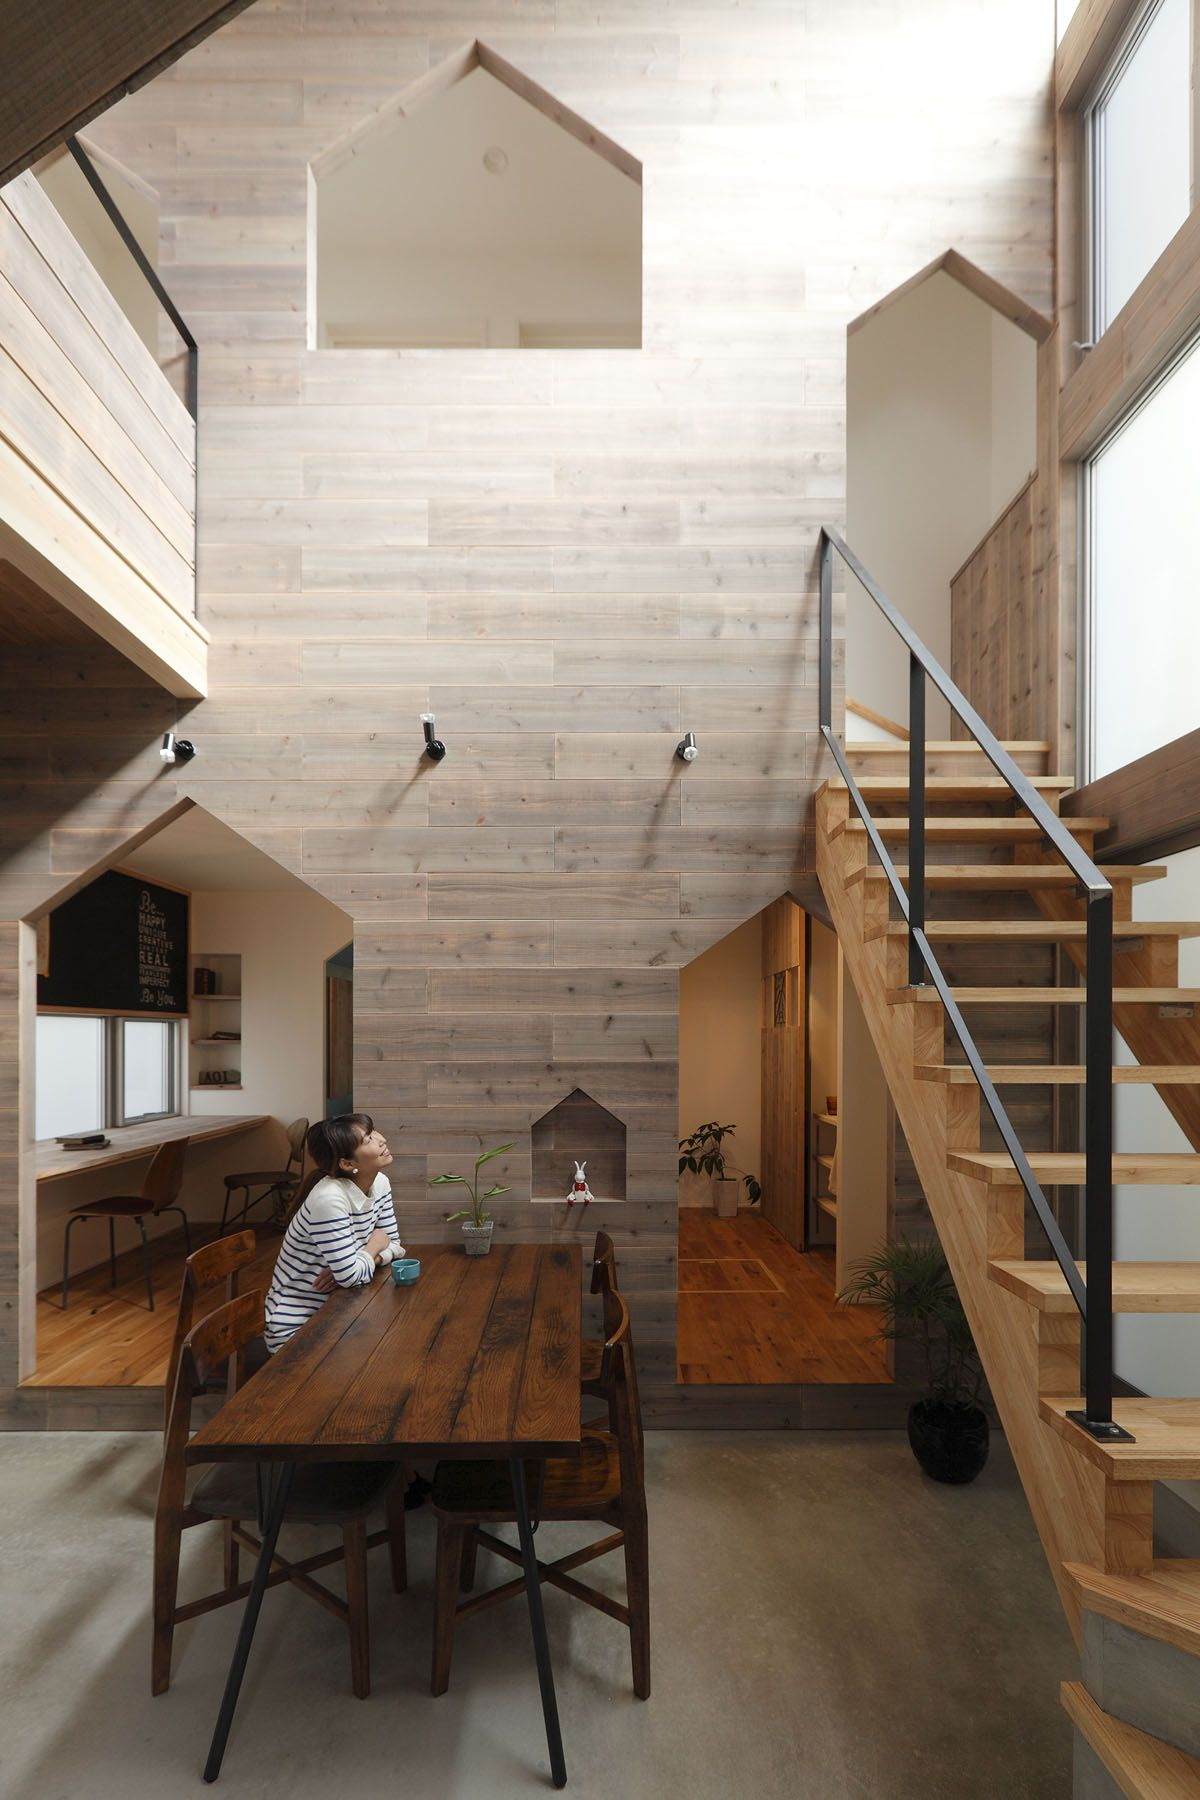 Small Modern House In Kyoto With Wood Interiors | IDesignArch | Interior  Design, Architecture U0026 Interior Decorating EMagazine